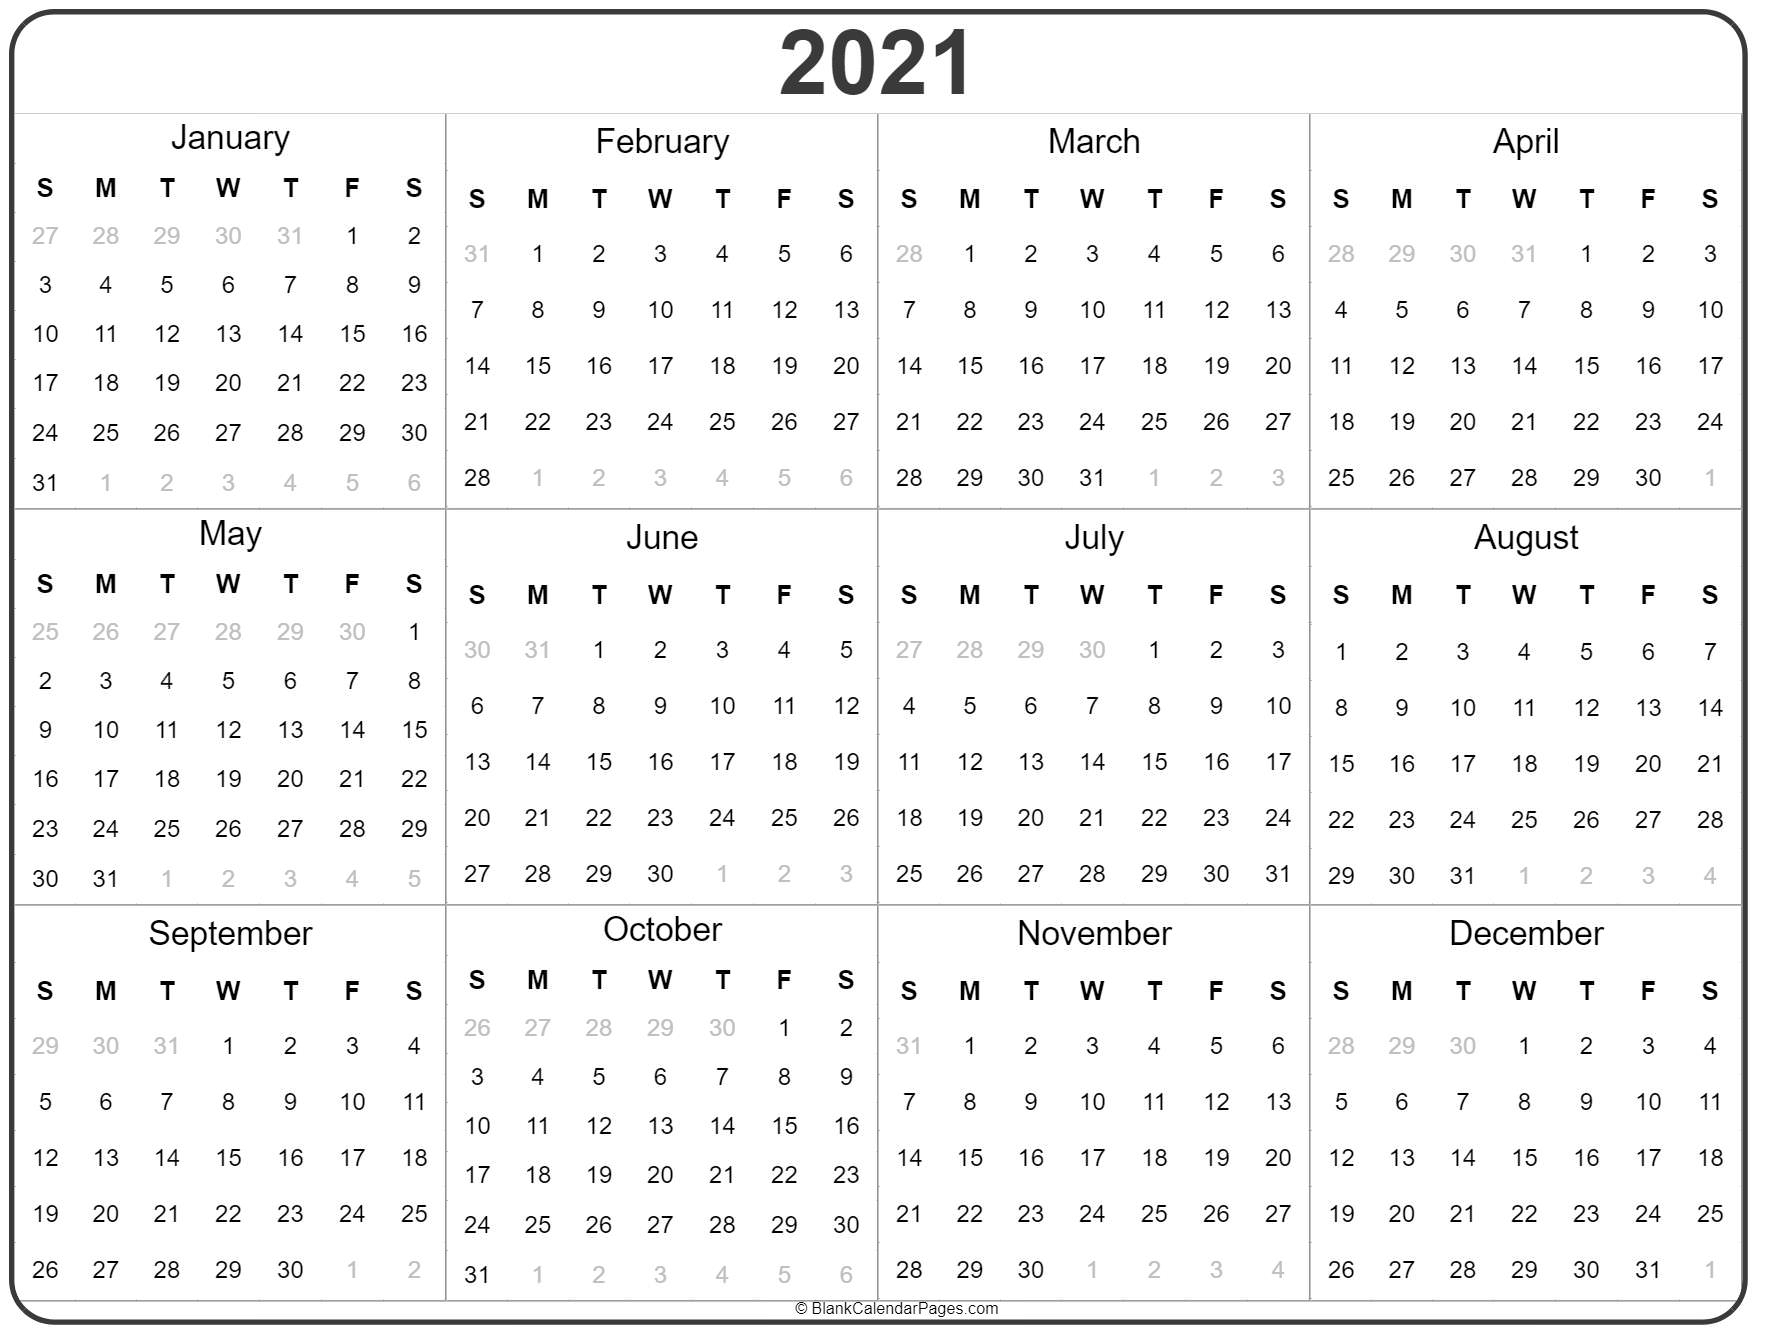 2021 Yearly Calendar Printable Free Full